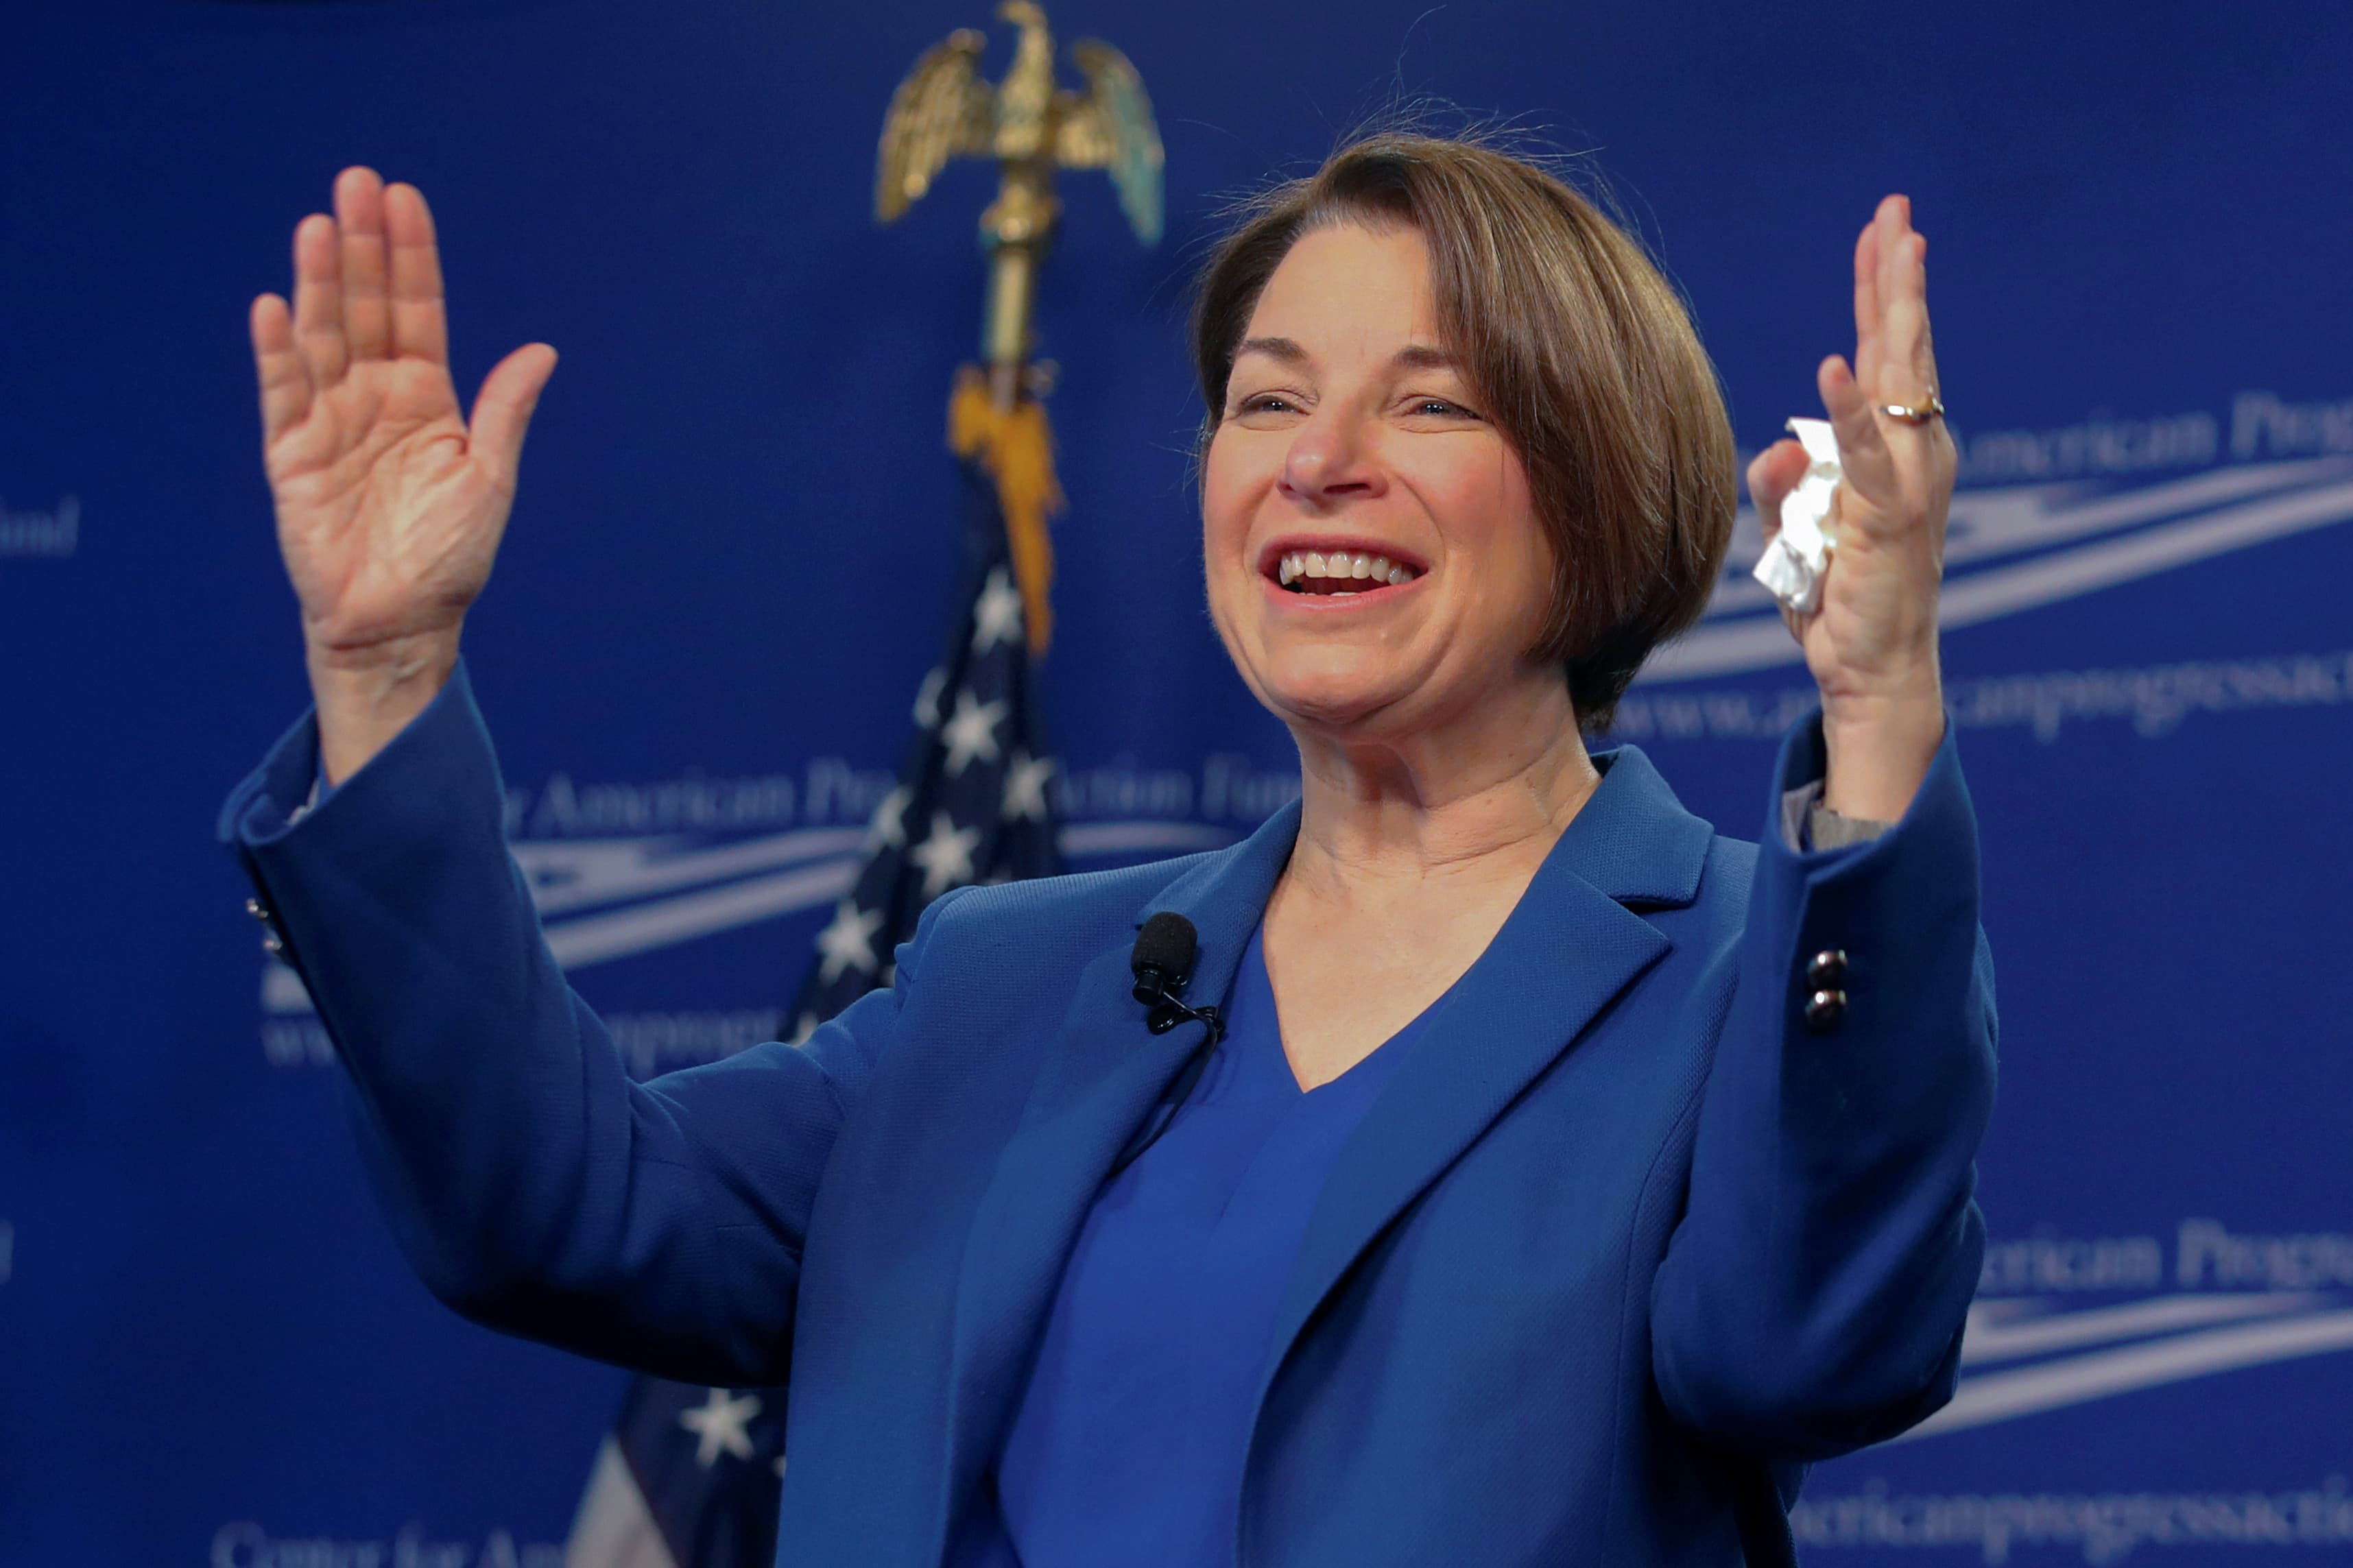 Best Infrastructure Stocks 2020 Amy Klobuchar proposes infrastructure plan in 2020 challenge to Trump